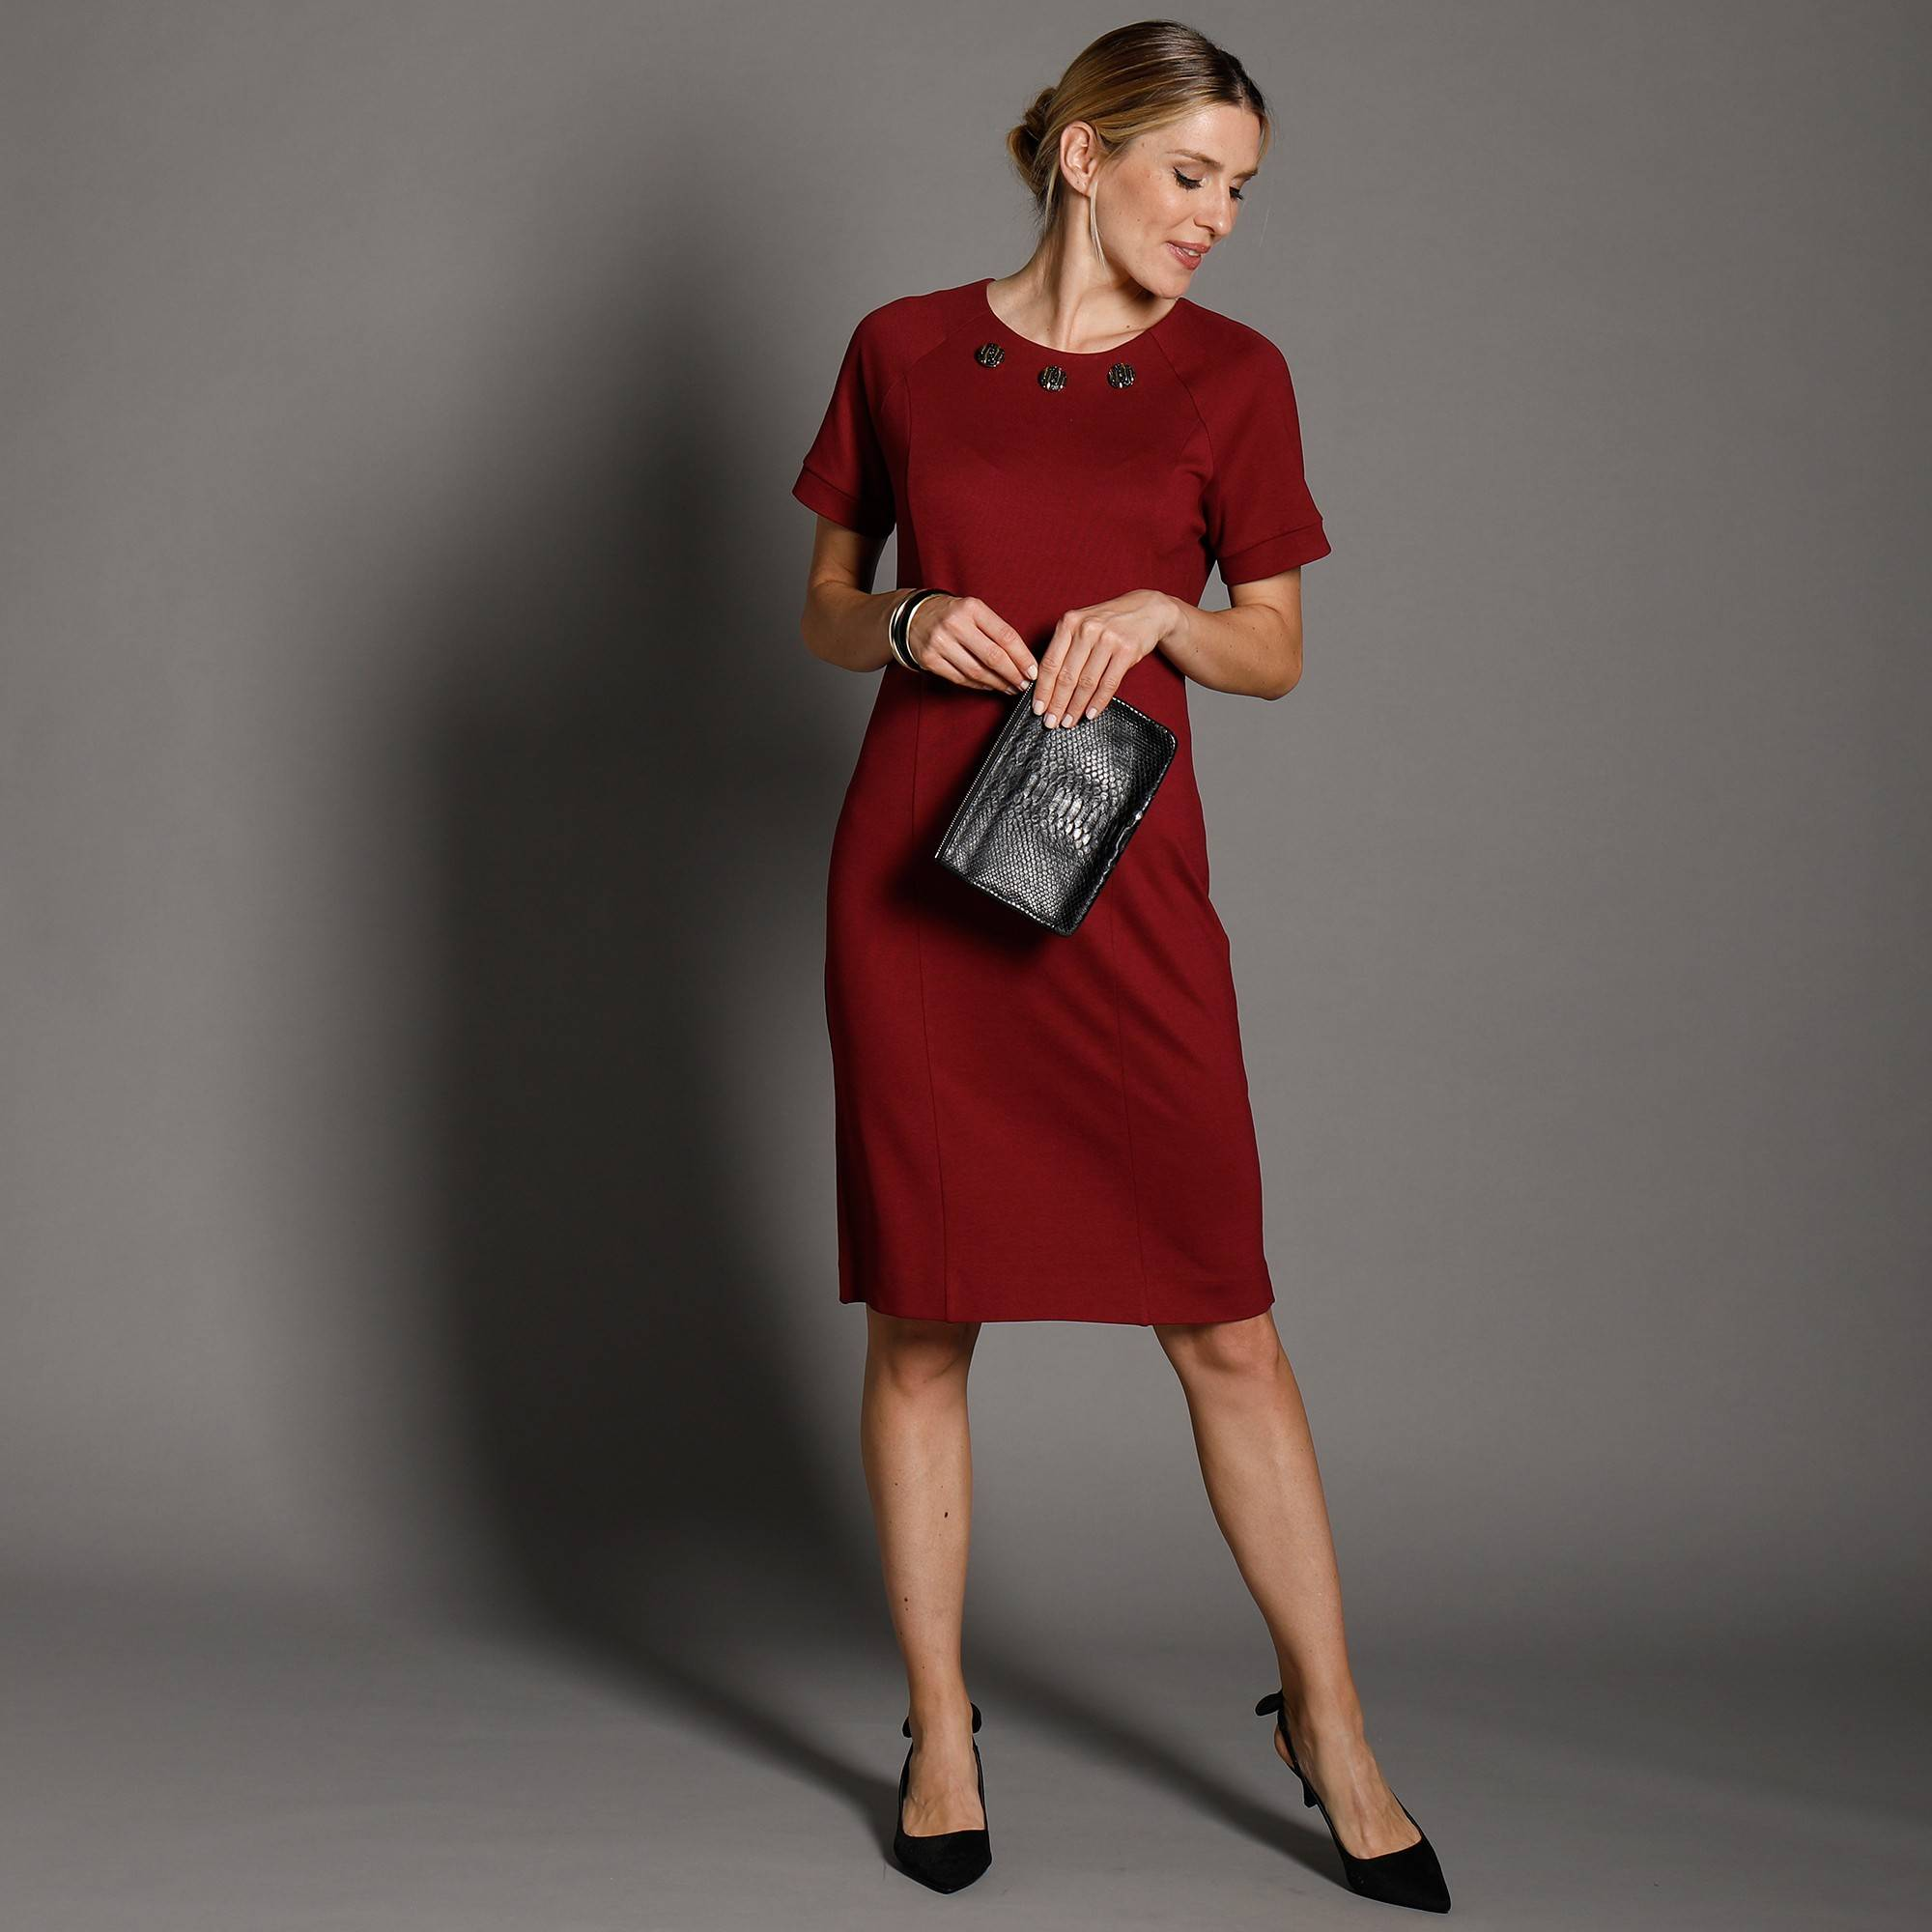 Robe unie col boutons fantaisies - Rouge - Taille : 46,48 - Blancheporte